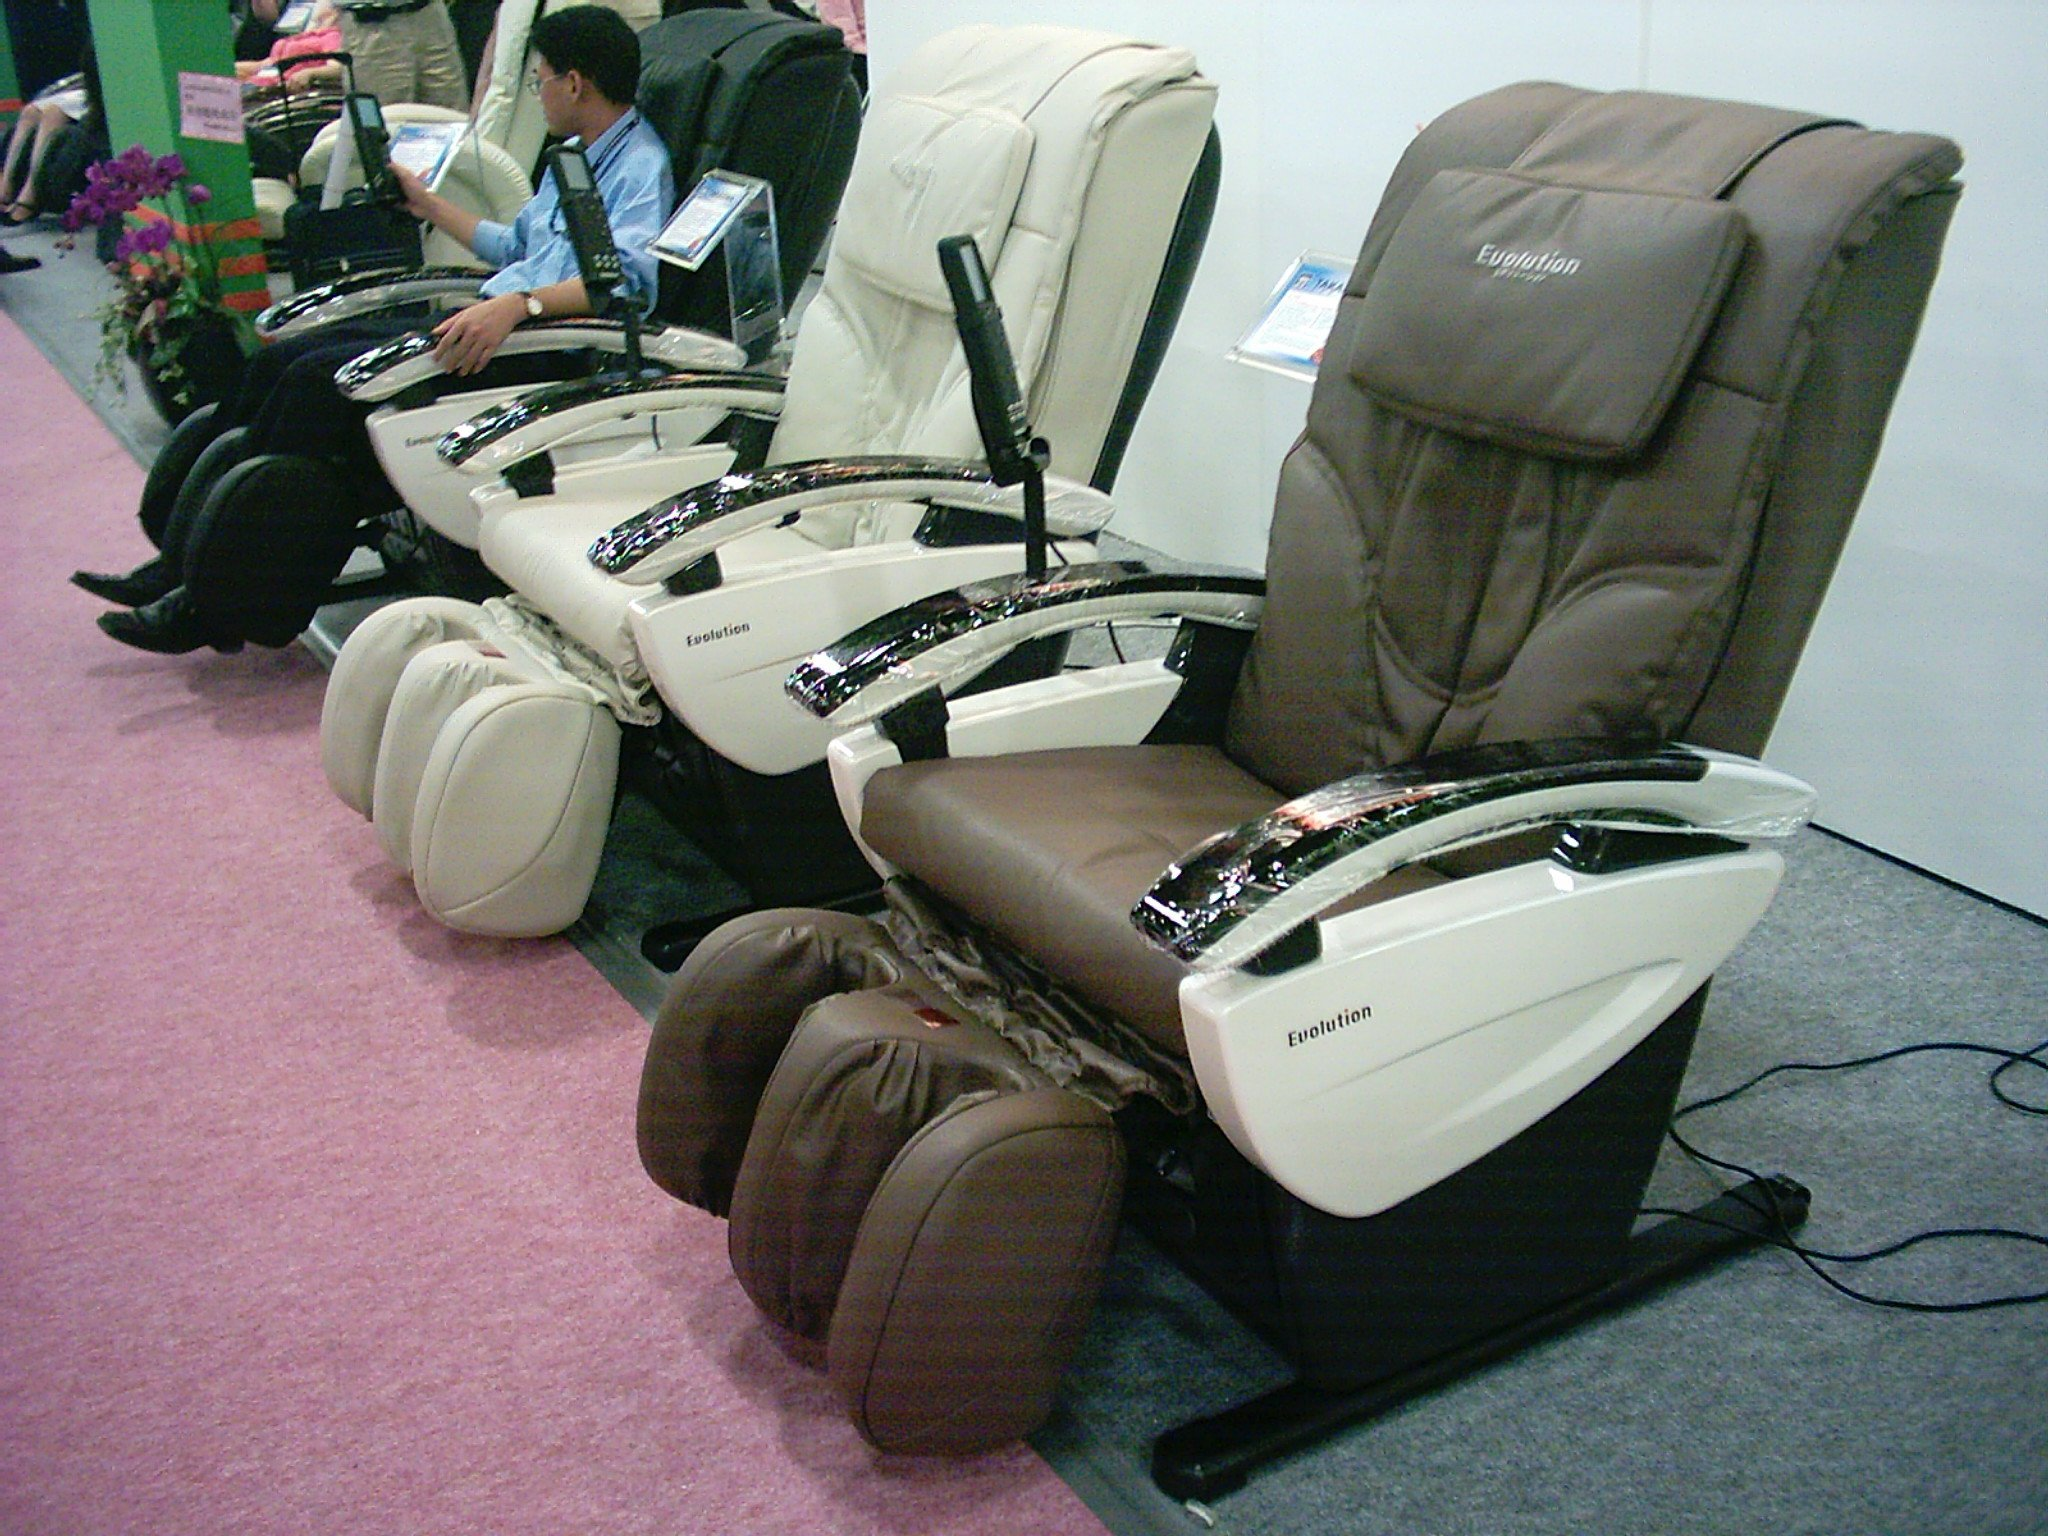 some massage chairs with the remote control siiting on the floor